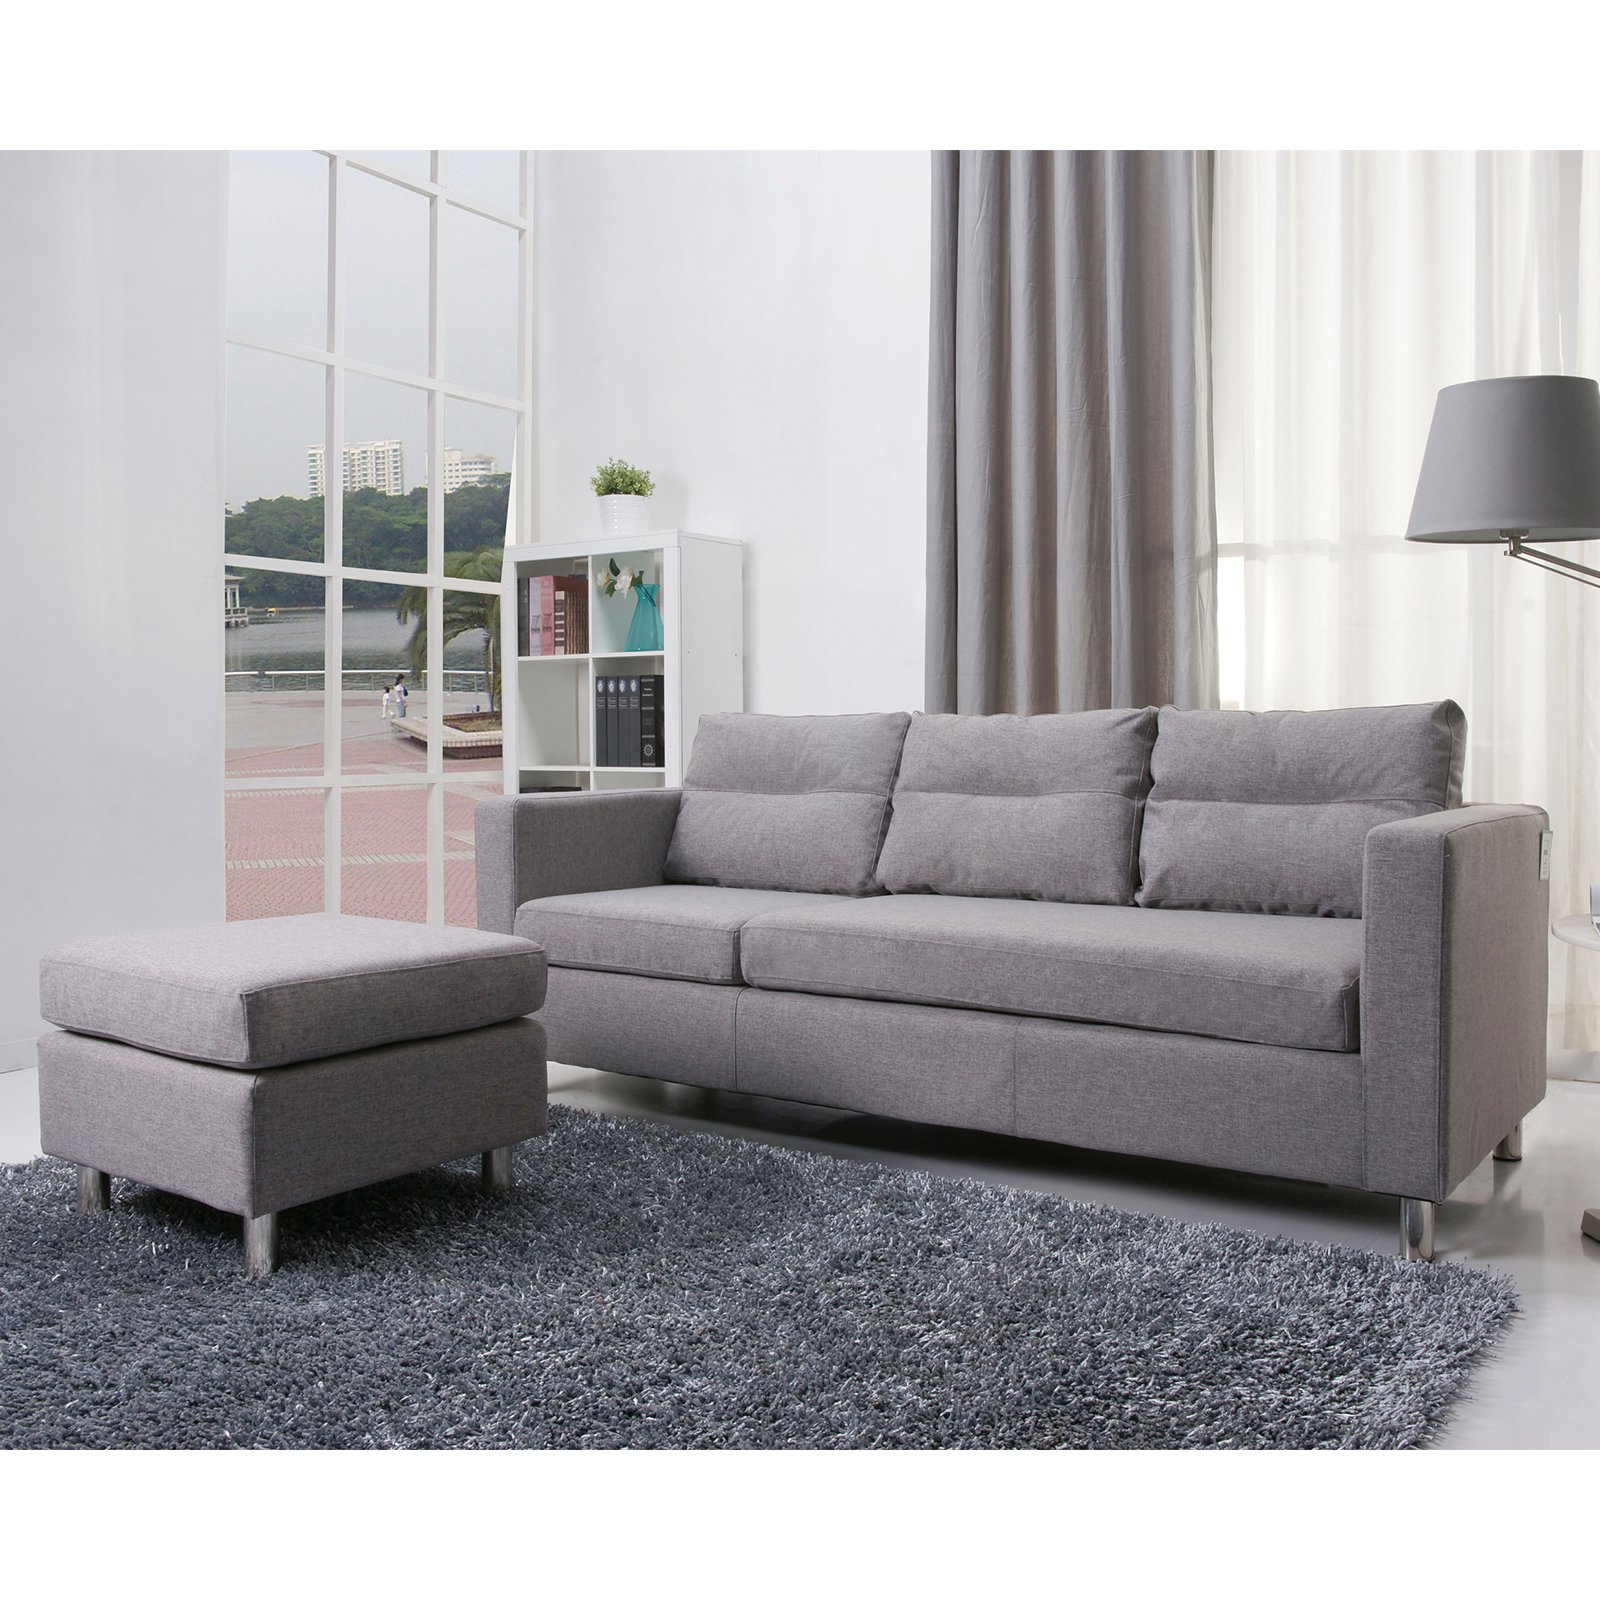 Gold Sparrow Detroit Convertible Sectional Sofa And Ottoman Set